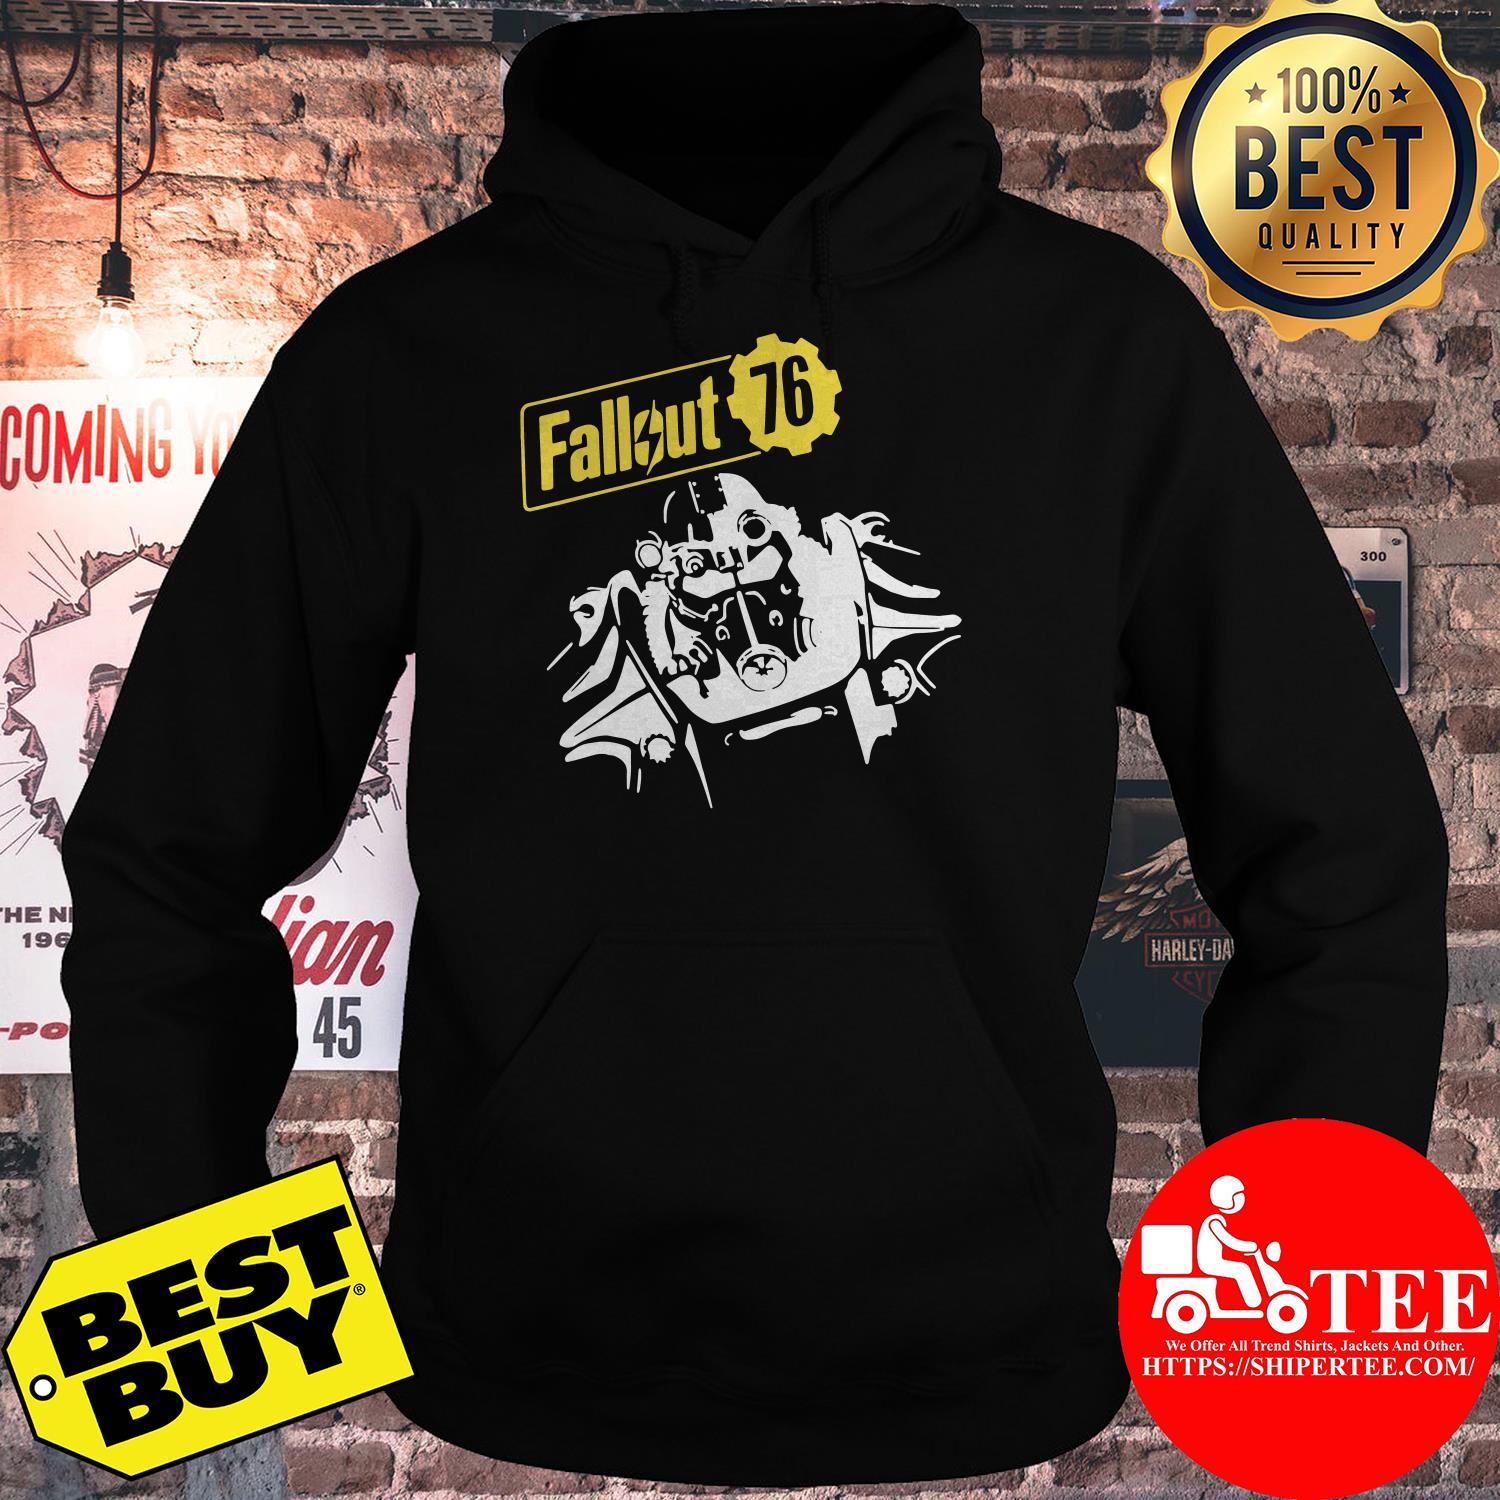 Fallout 76 Gaming hoodie